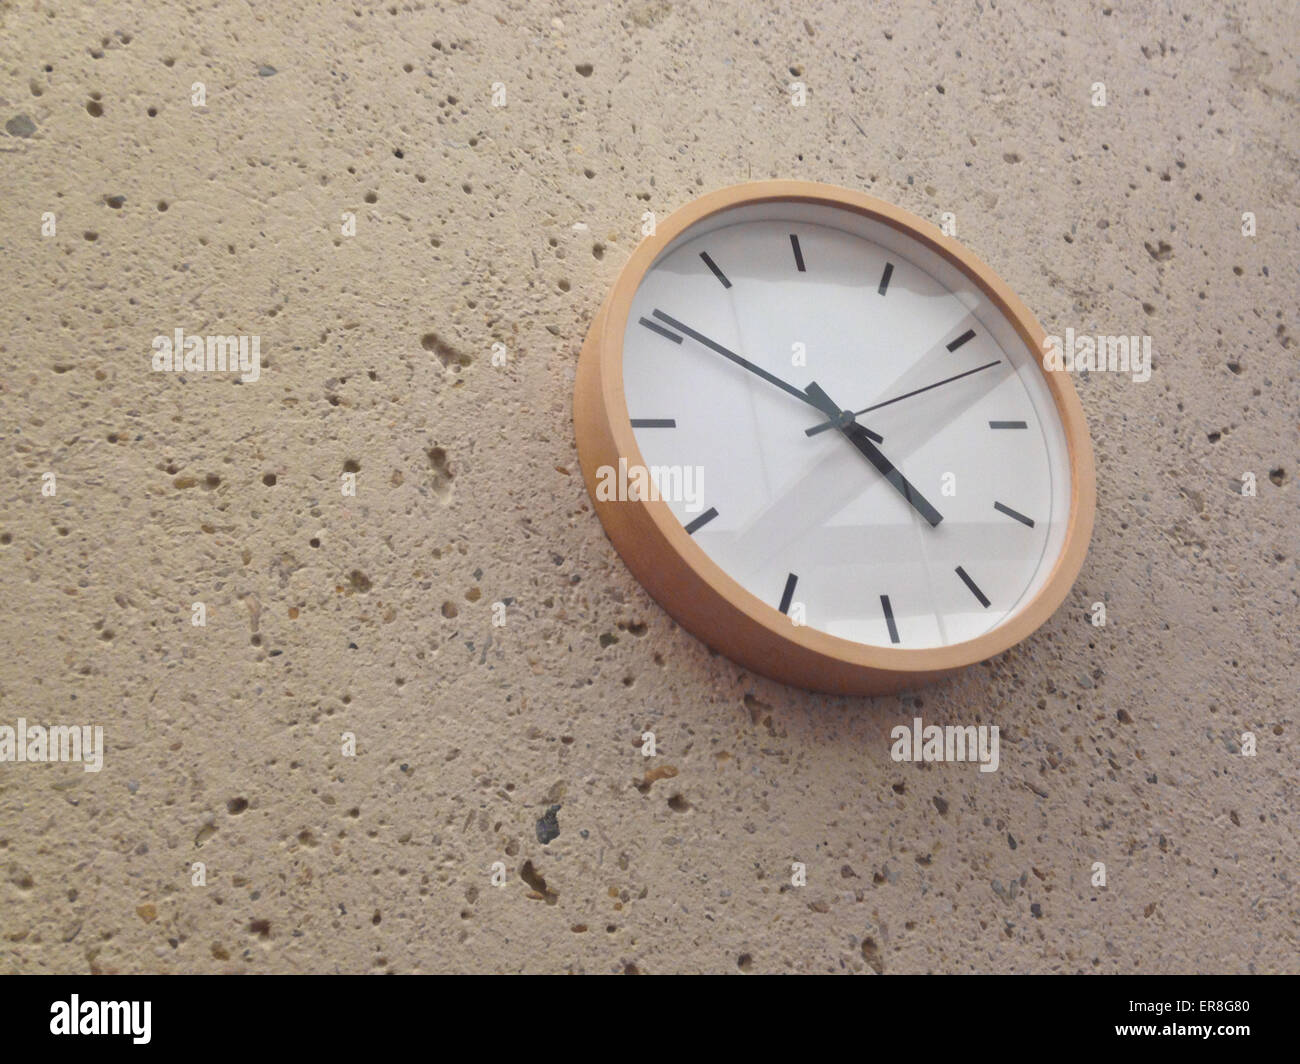 Simple classical analog wall clock on stone wall - Stock Image